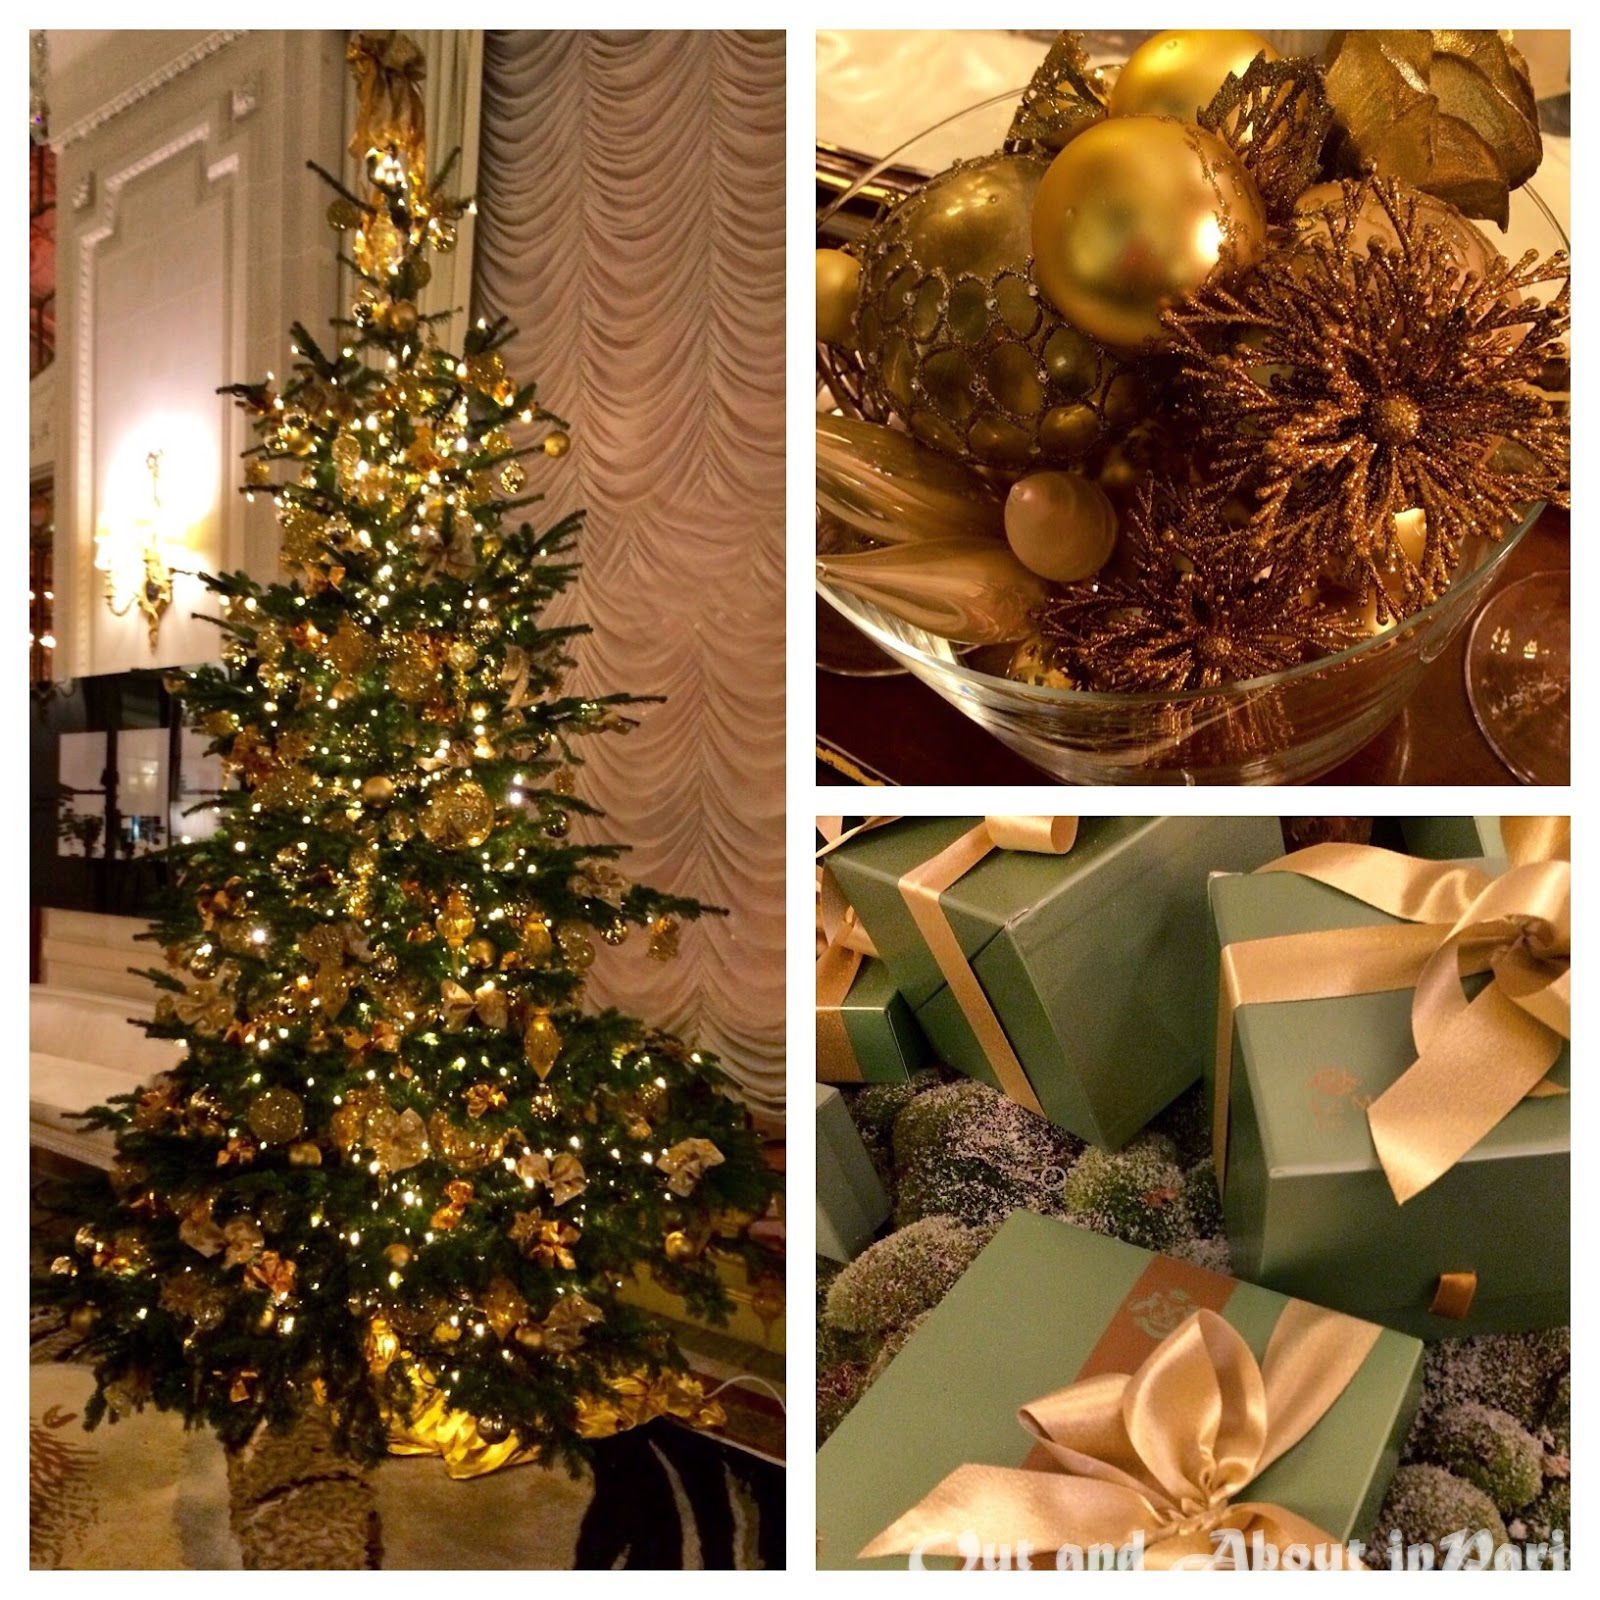 Paris Christmas Decorations: Le Meurice And Cédric Grolet Celebrate The Holidays With